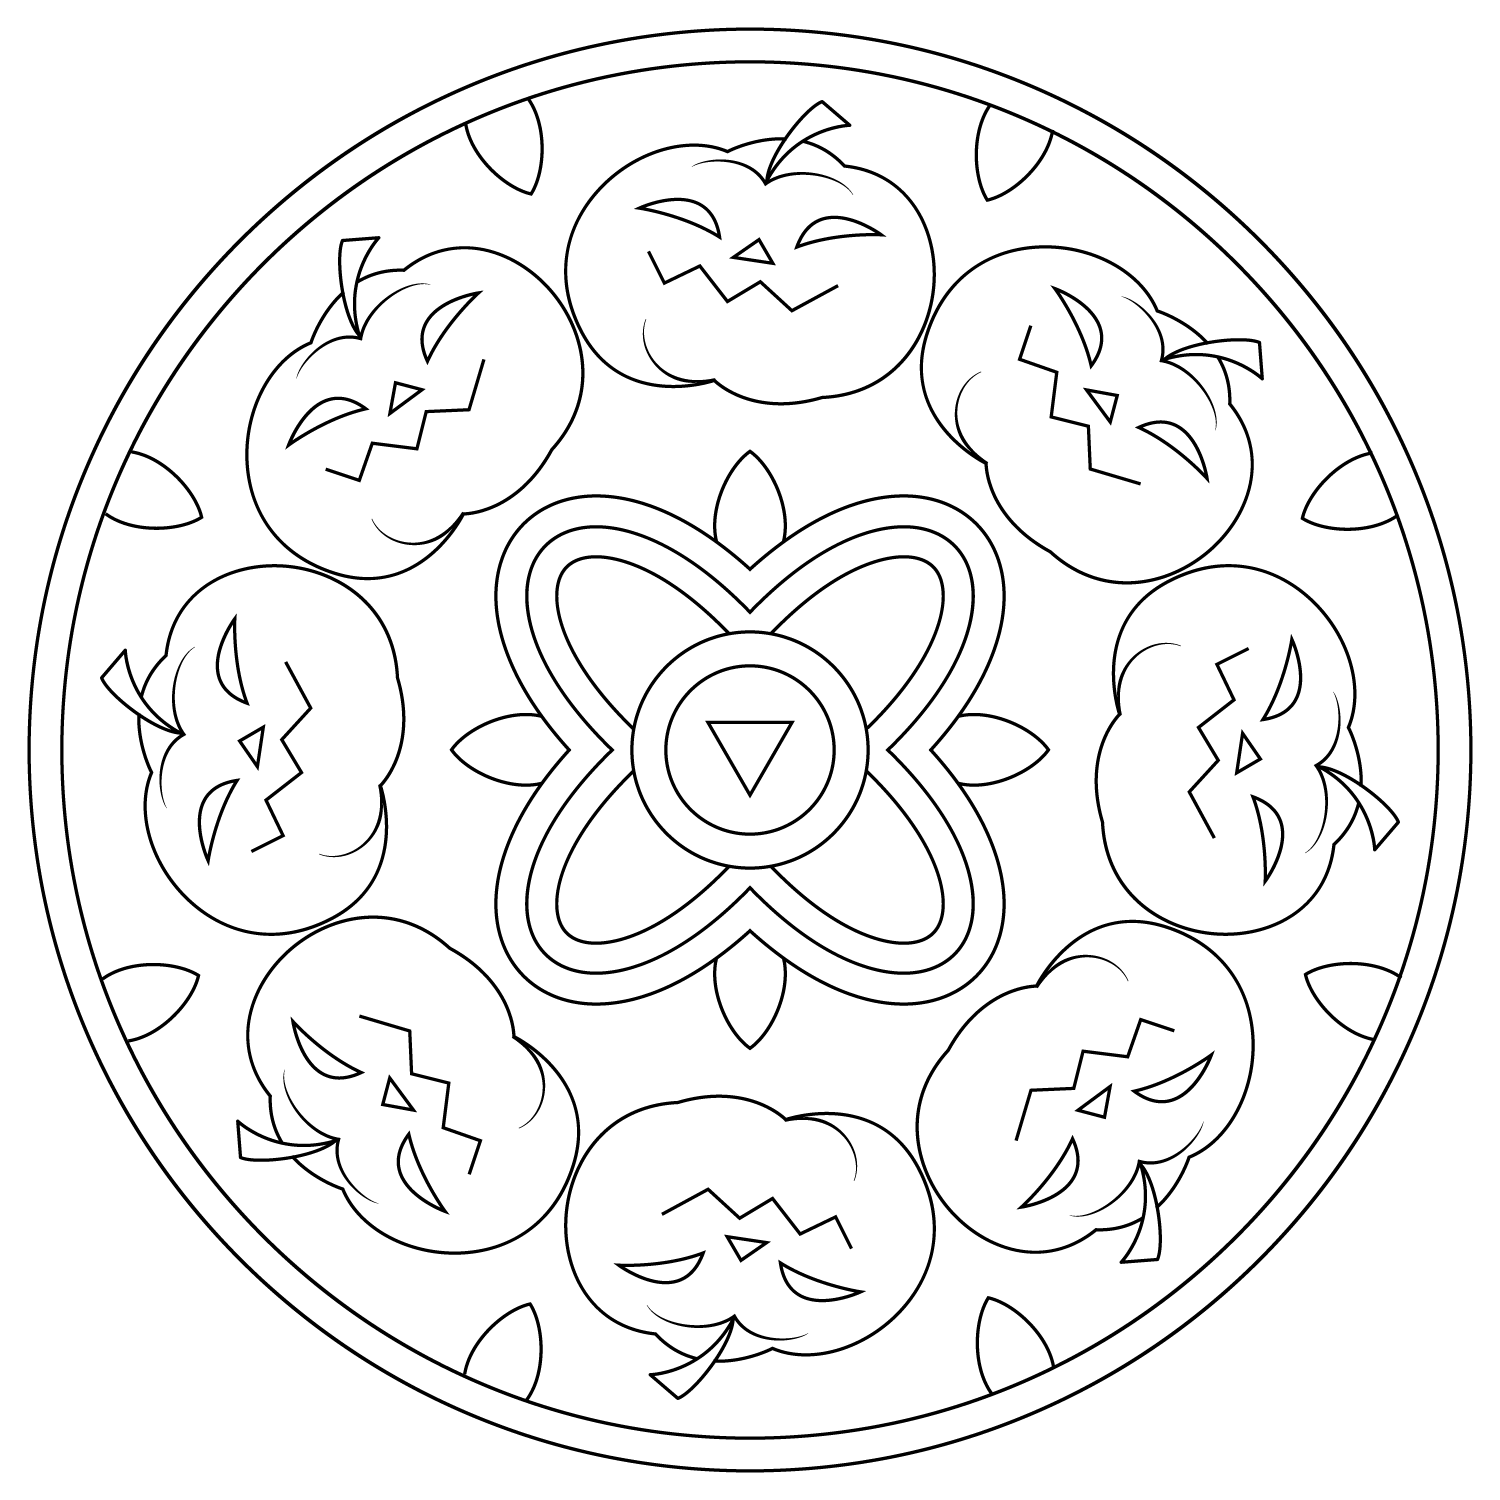 free-printable-halloween-mandala-coloring-pages-1